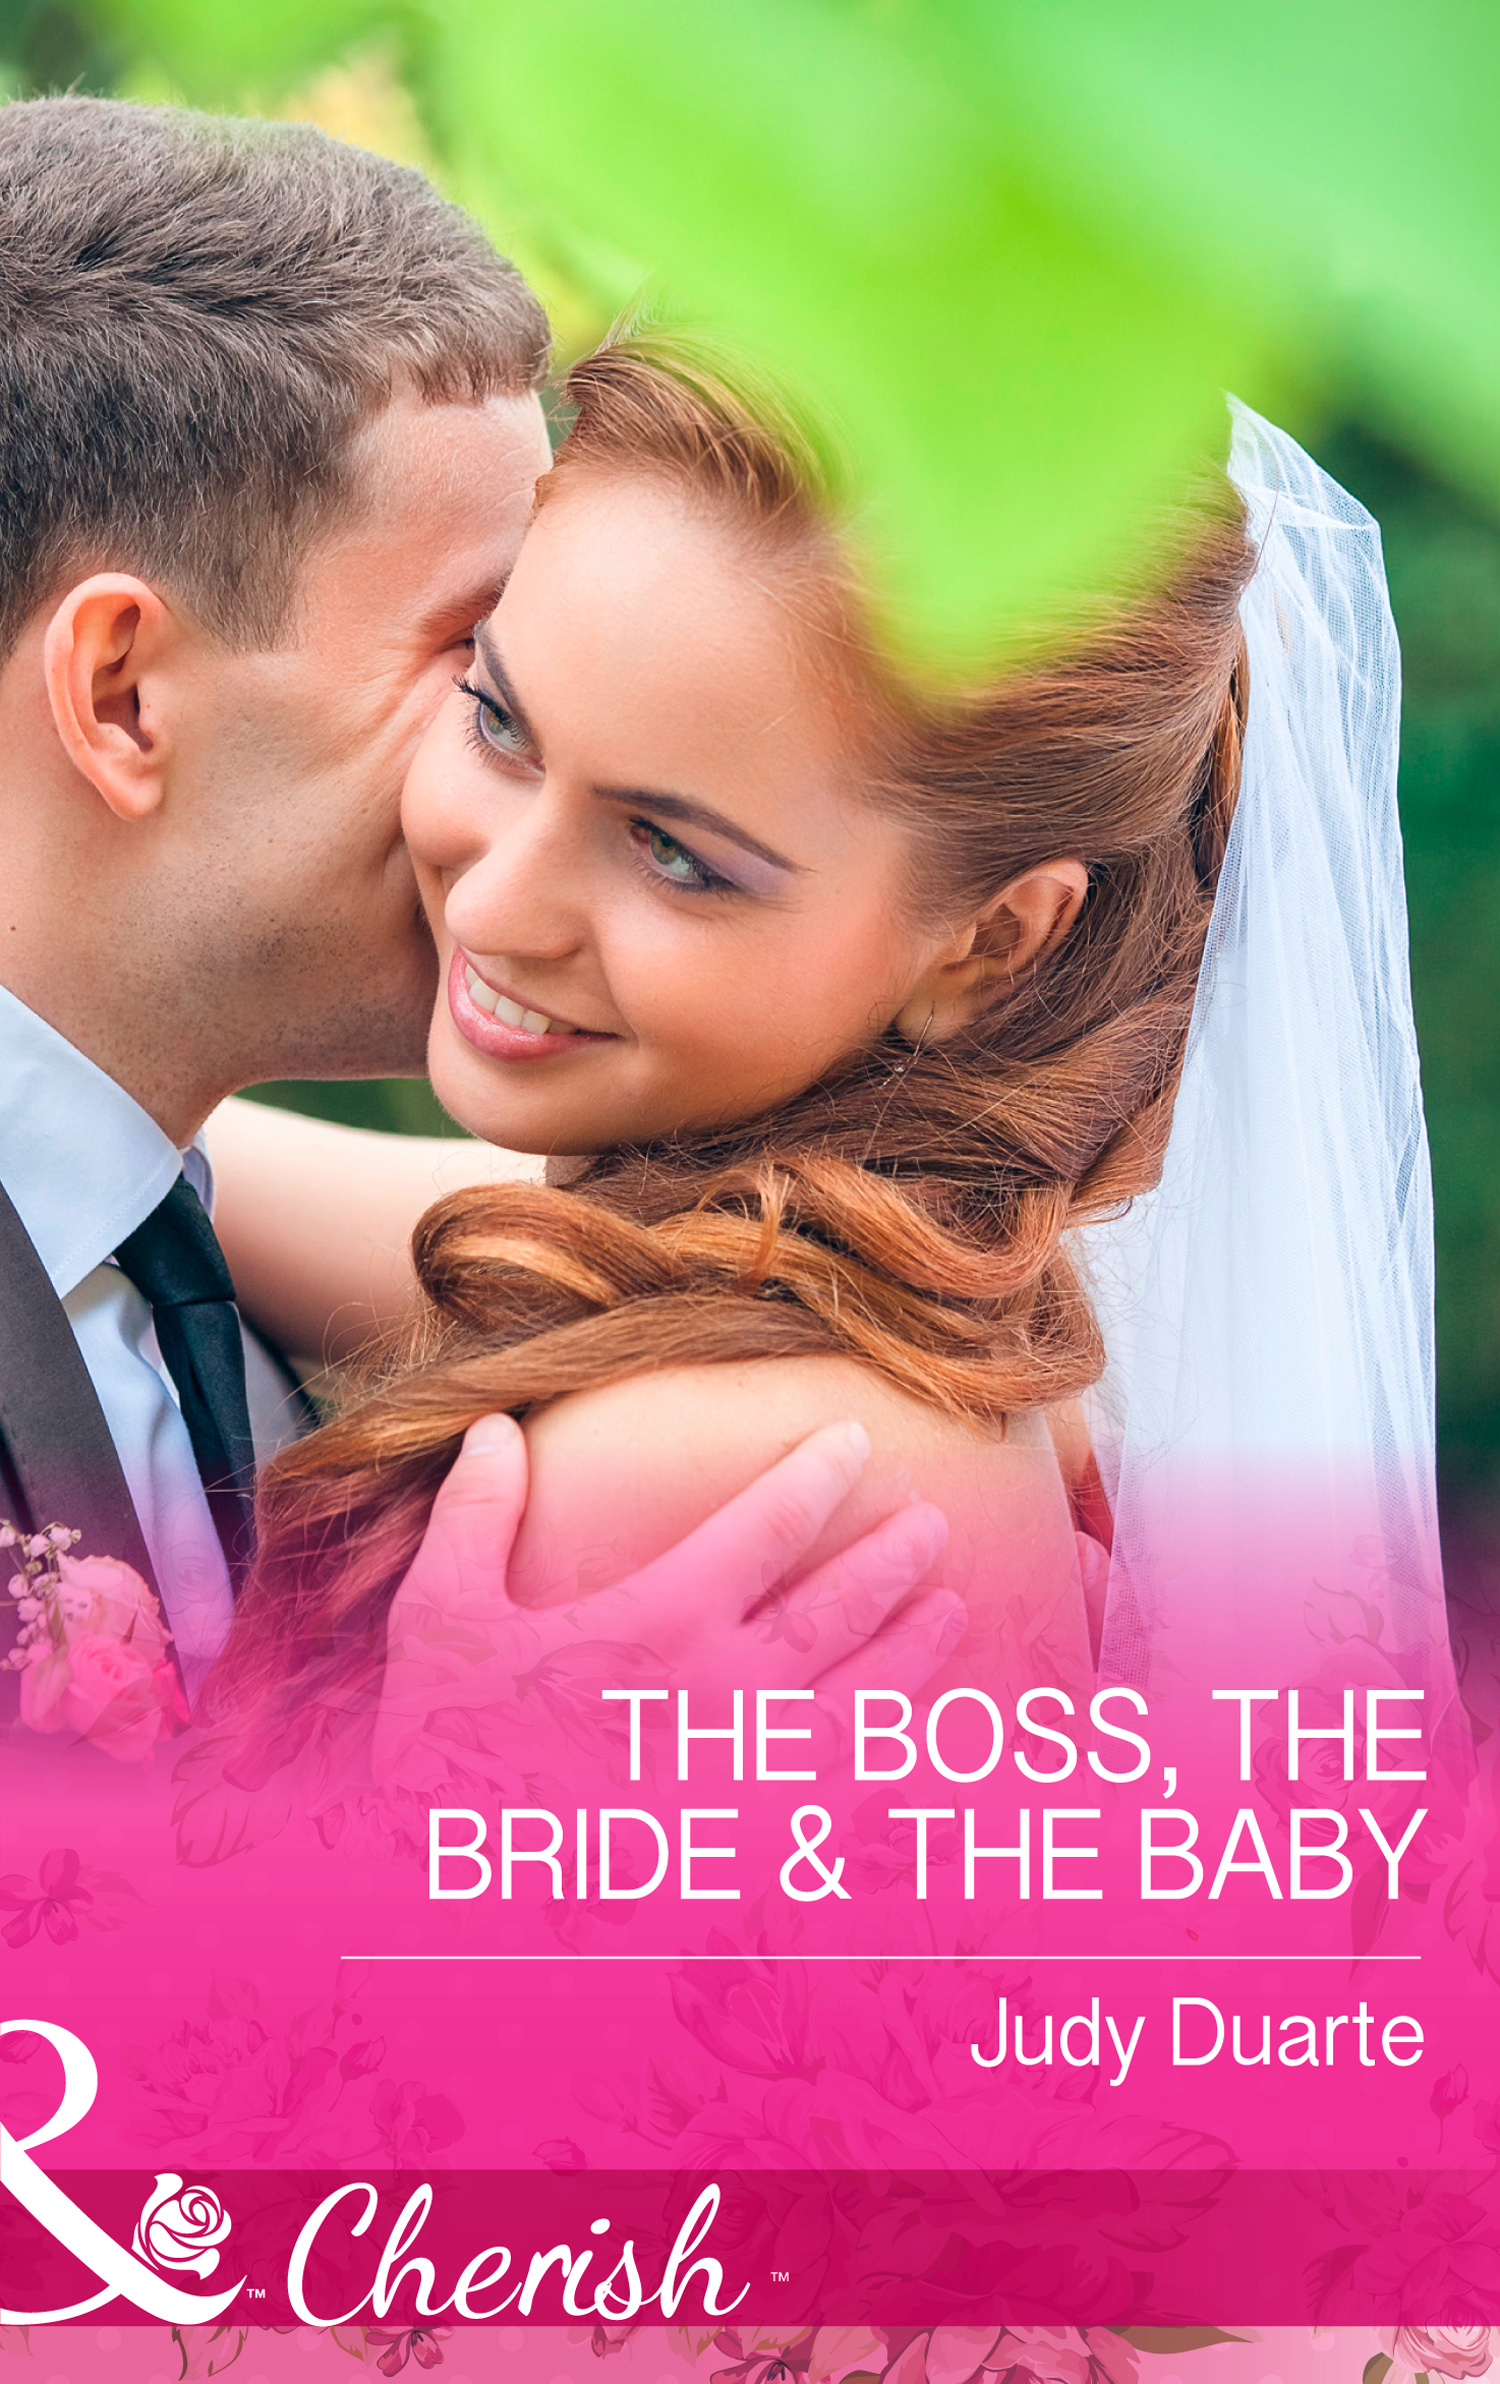 The Boss, the Bride & the Baby